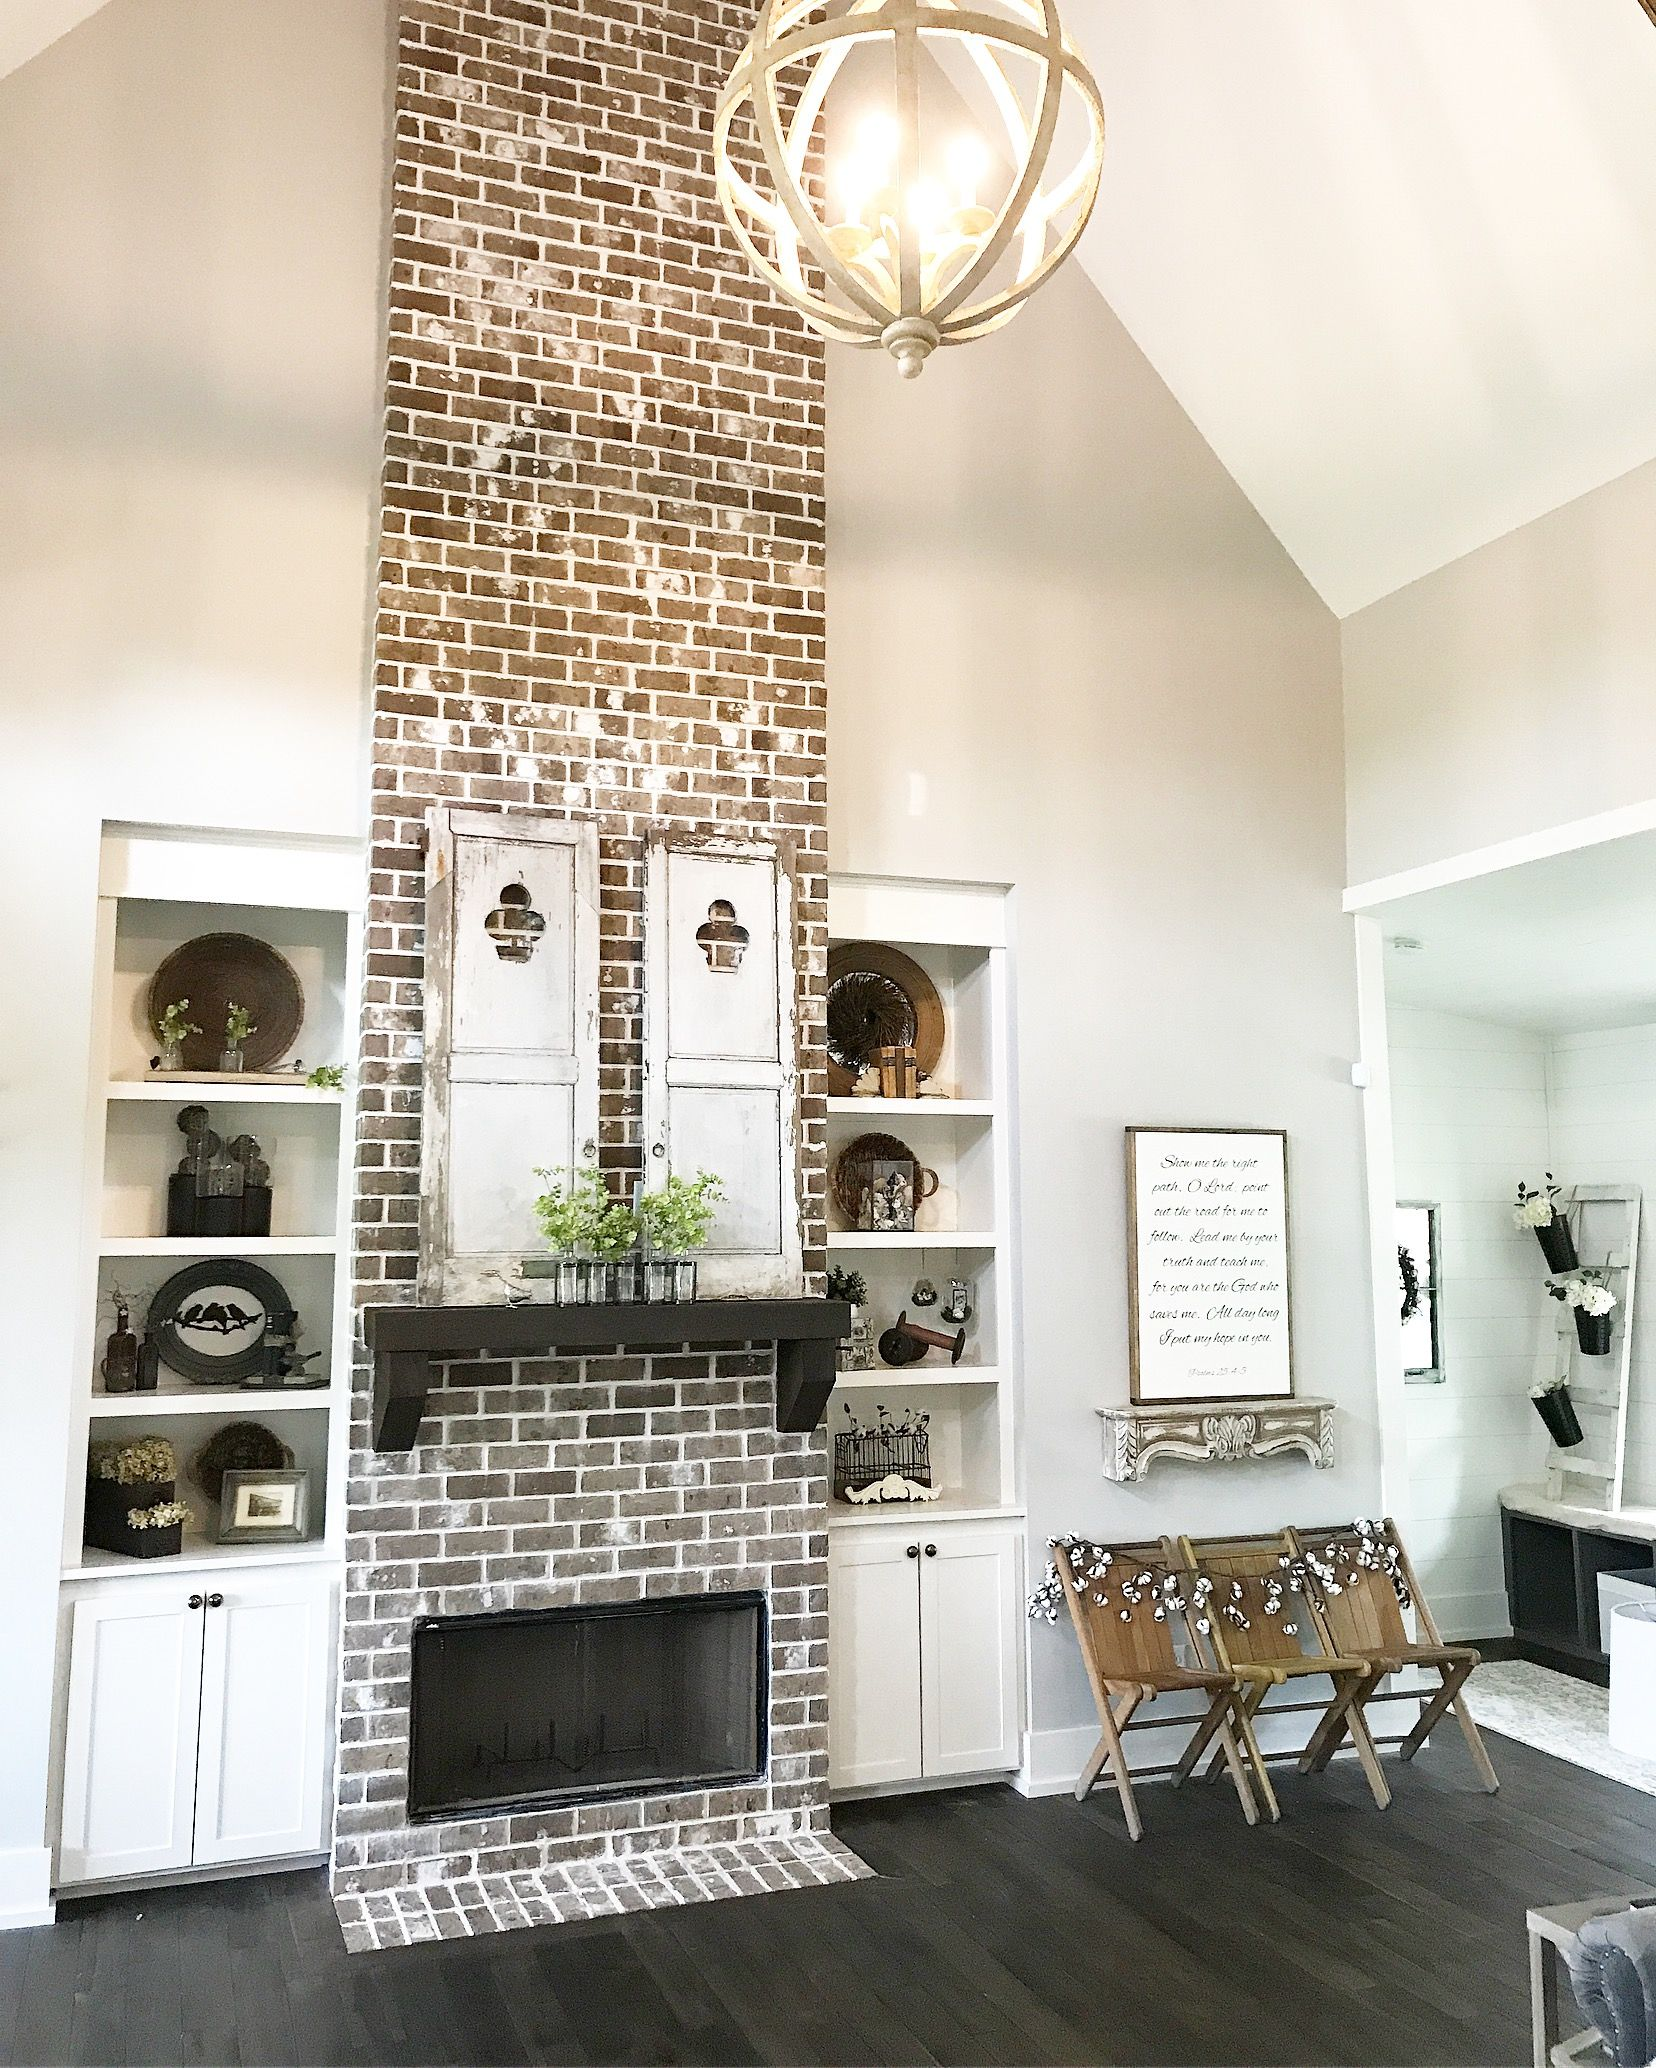 Brick Fireplace Floor To Ceiling Fireplace Farmhouse Brick Fireplace Decor Red Brick Fireplaces Brick